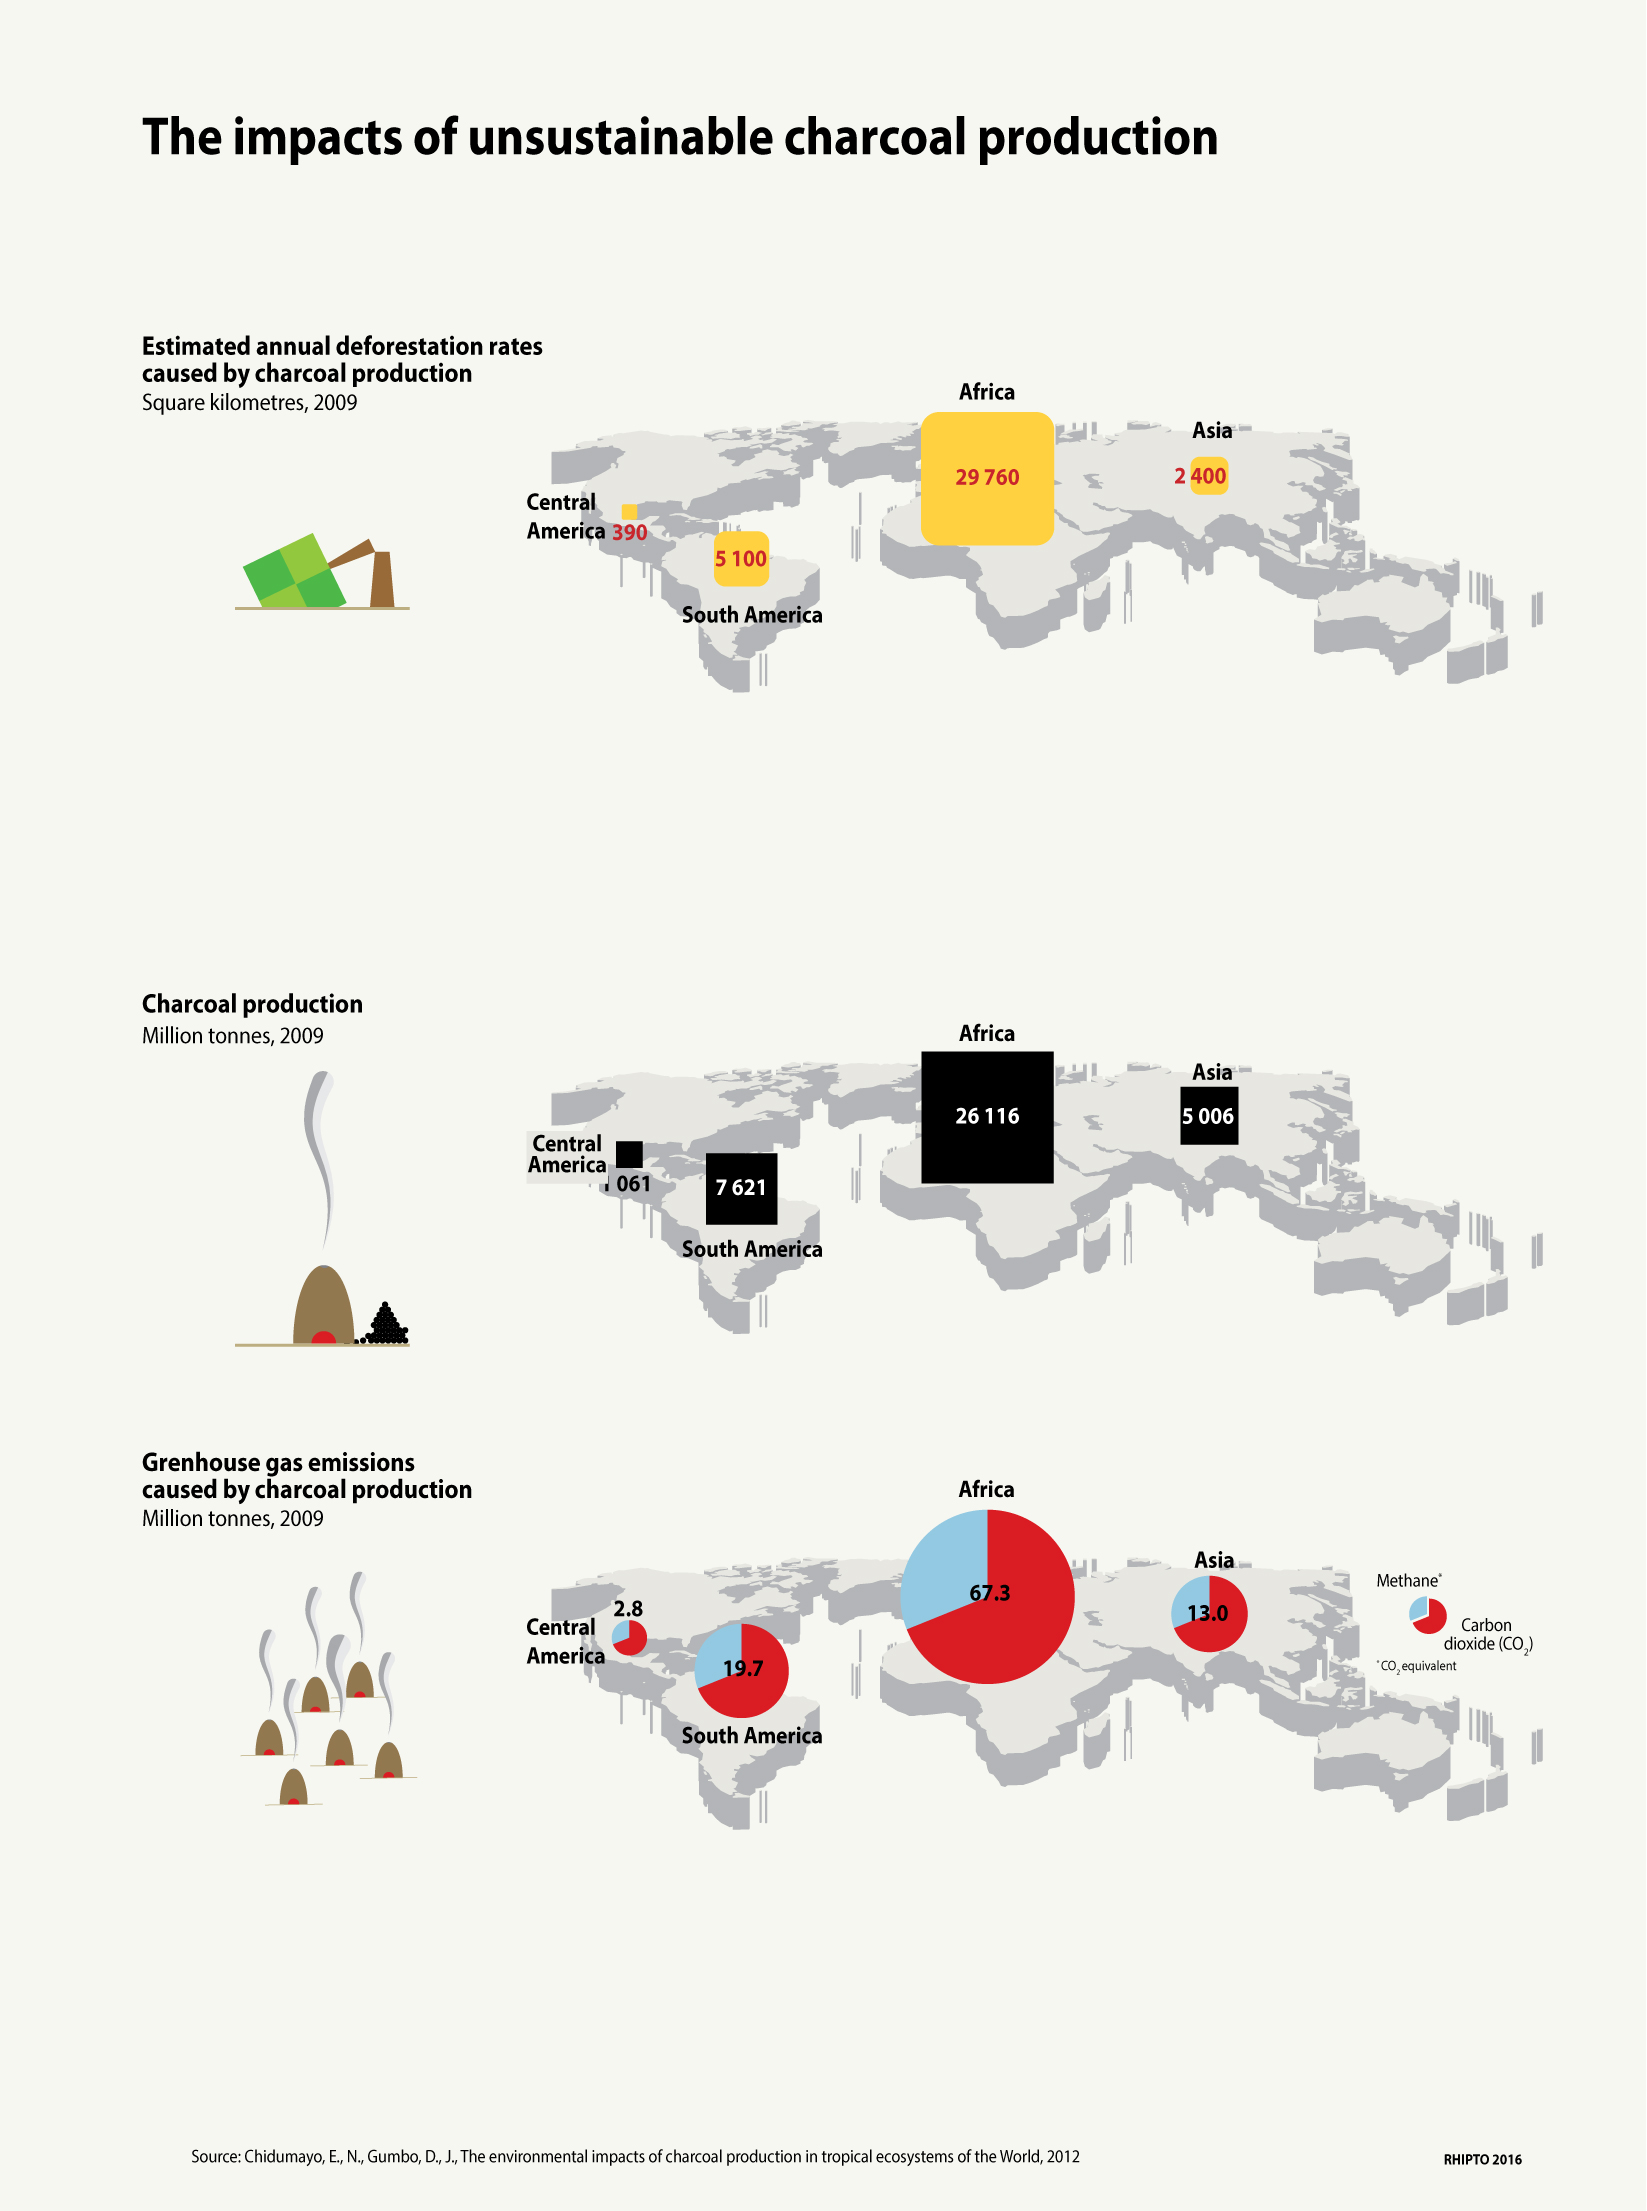 Impacts of unsustainable charcoal